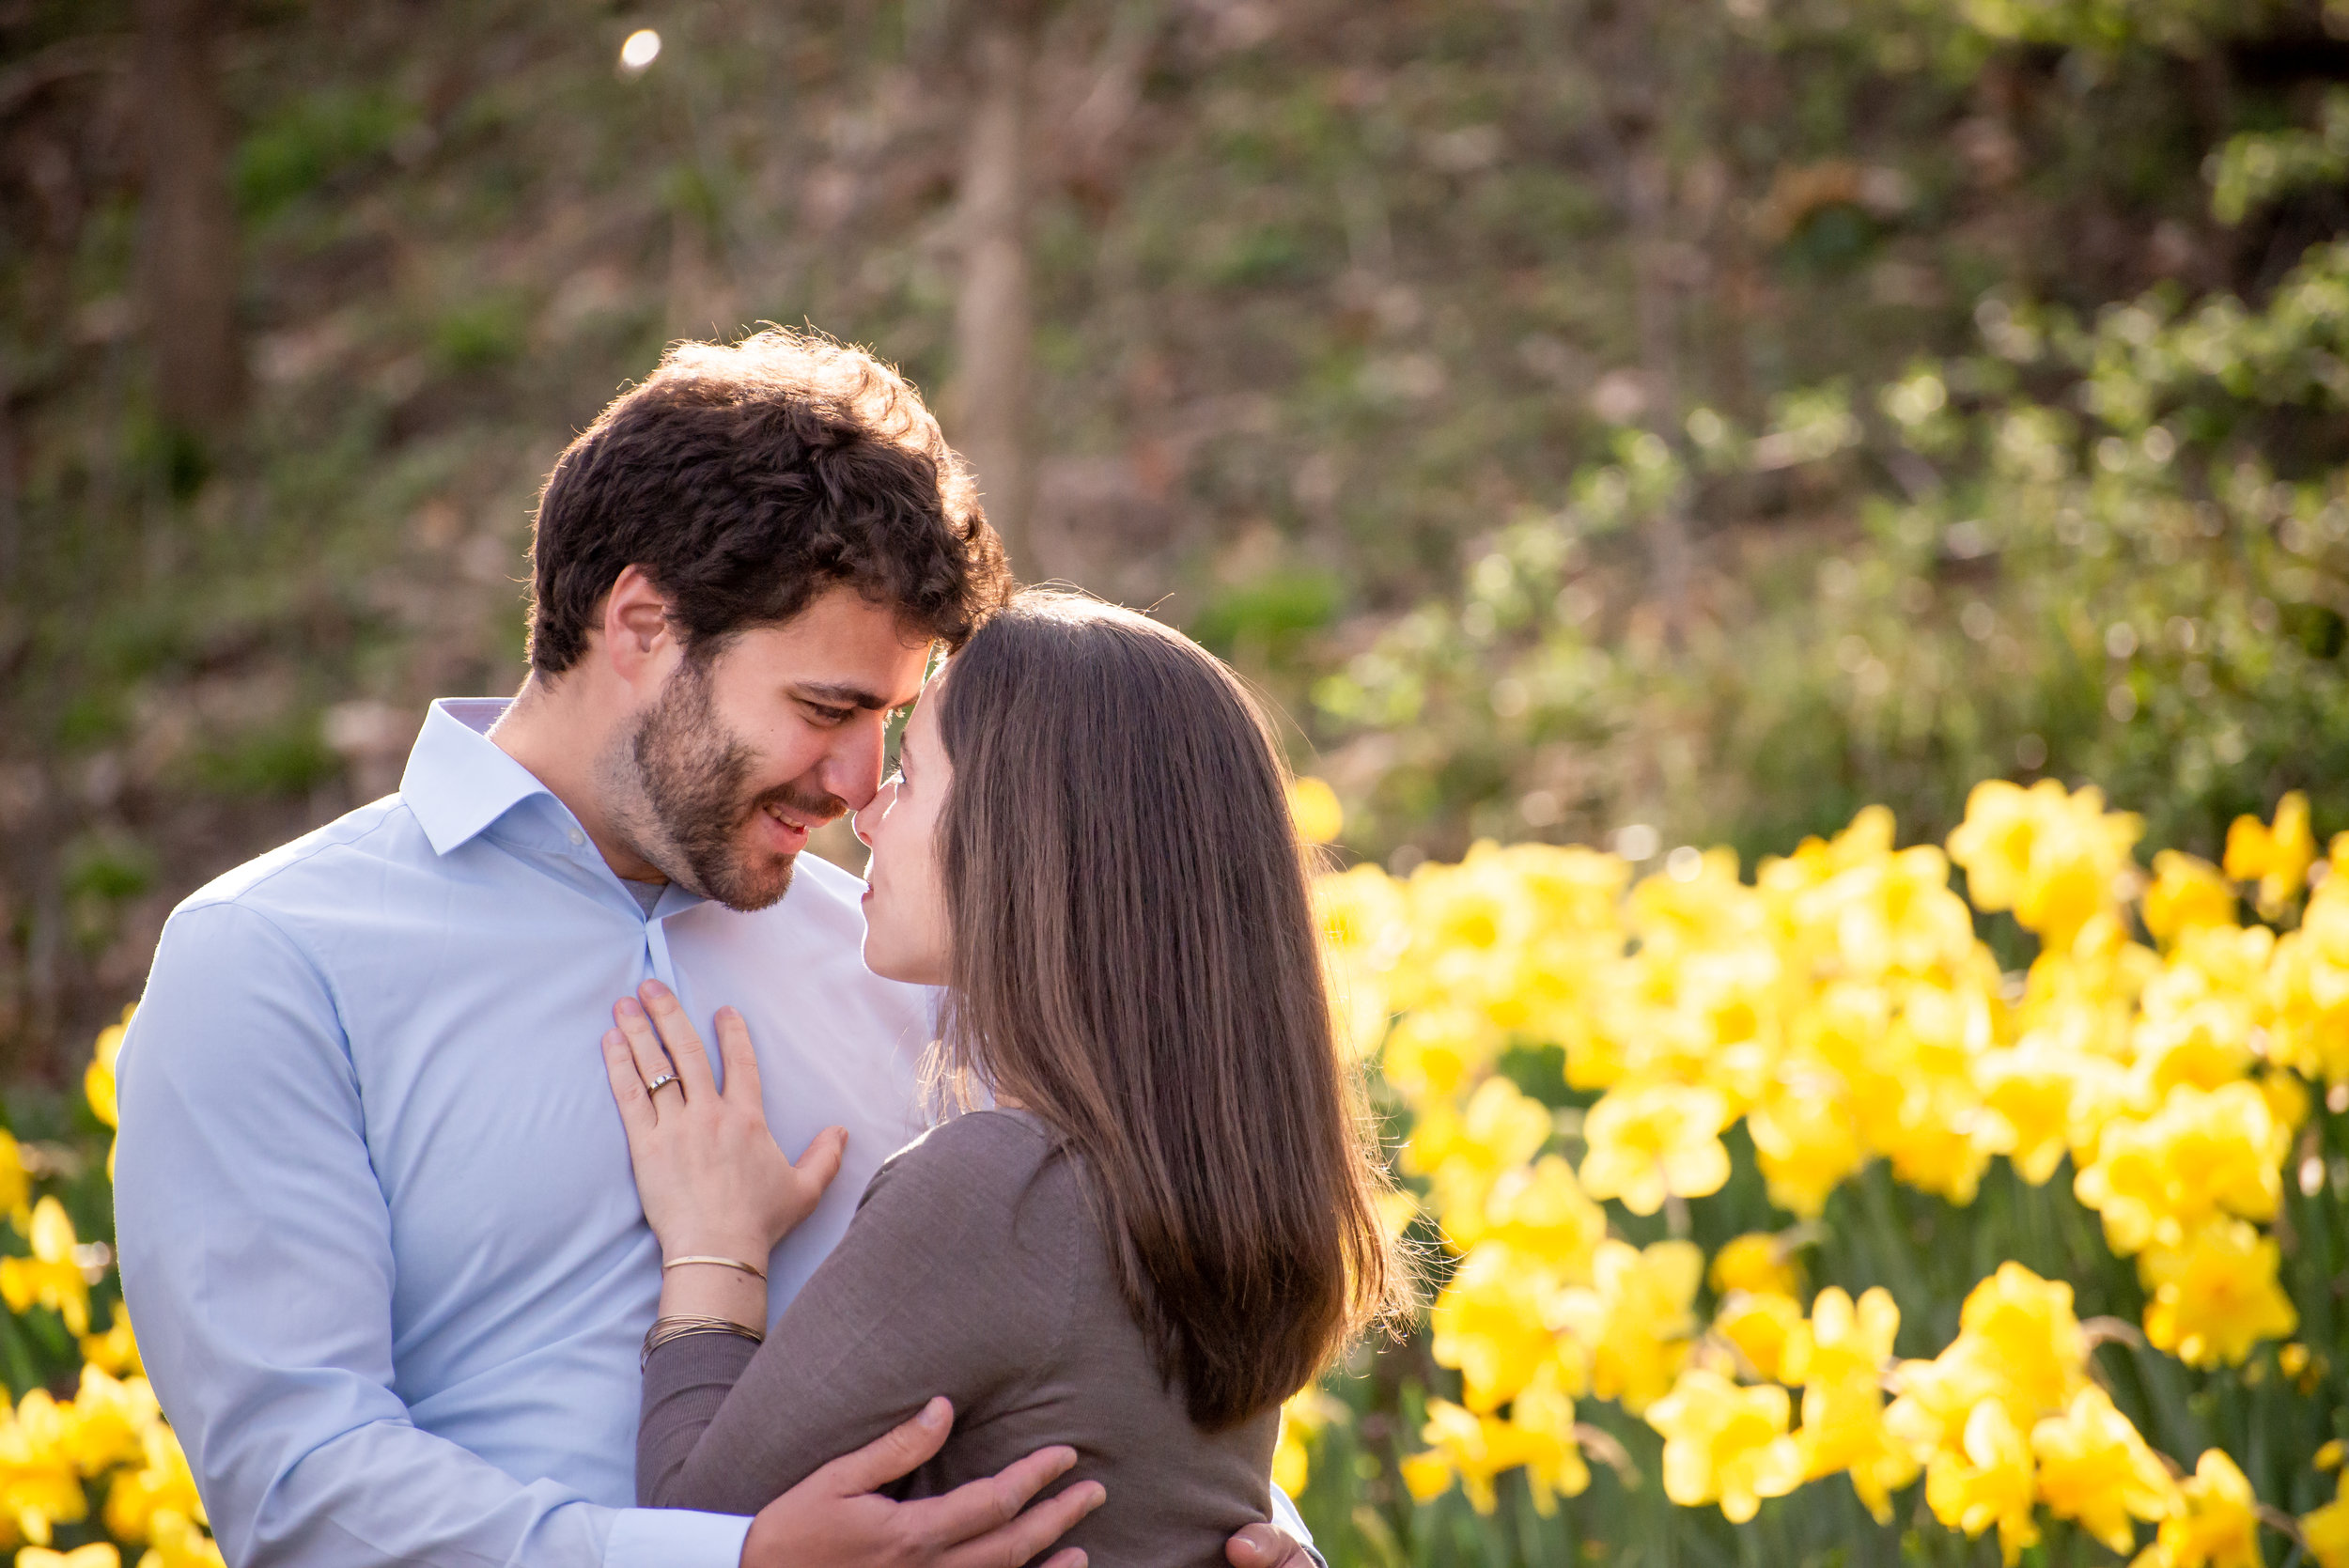 Central Park Harlem Meer Engagement Photos 4.jpg